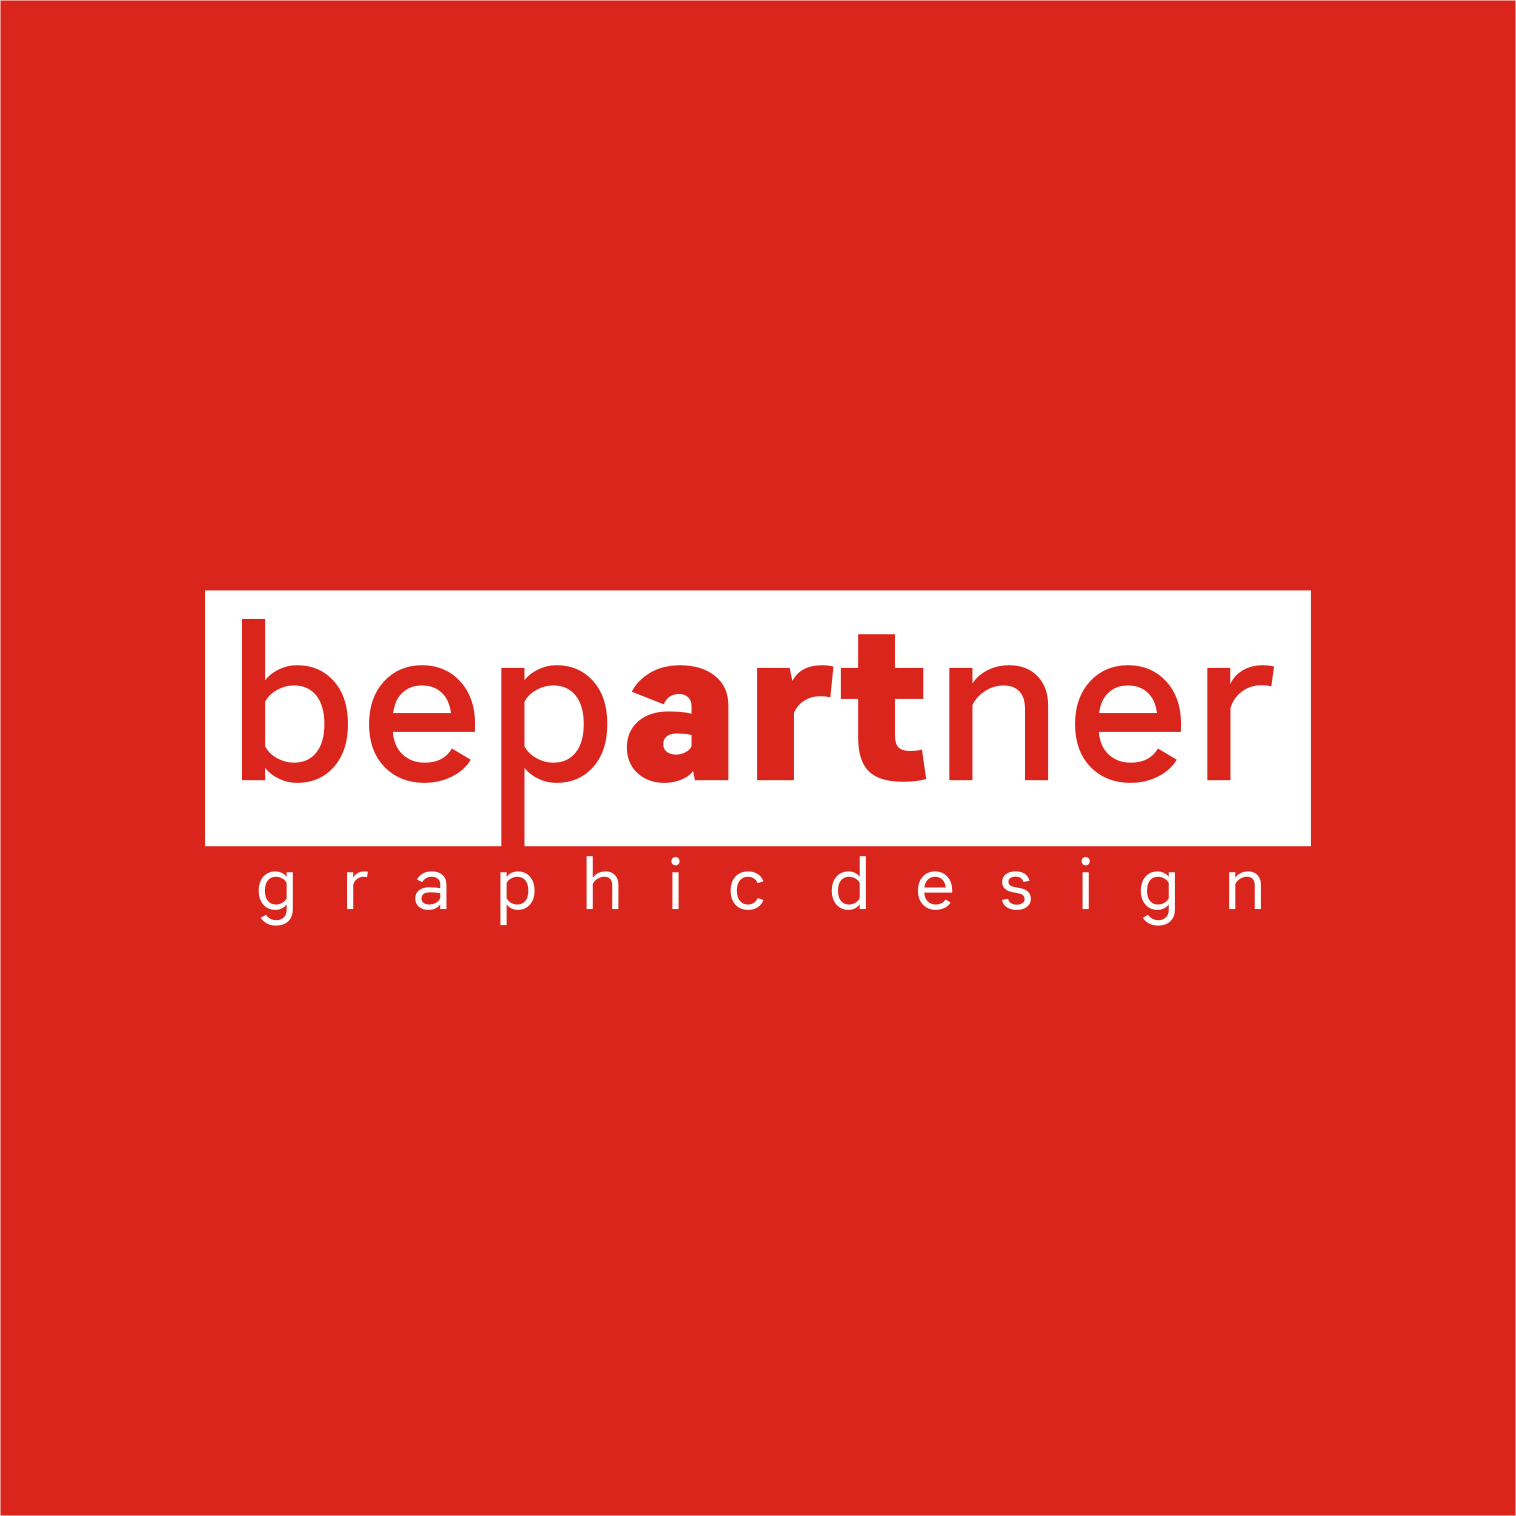 Bepartner new logo